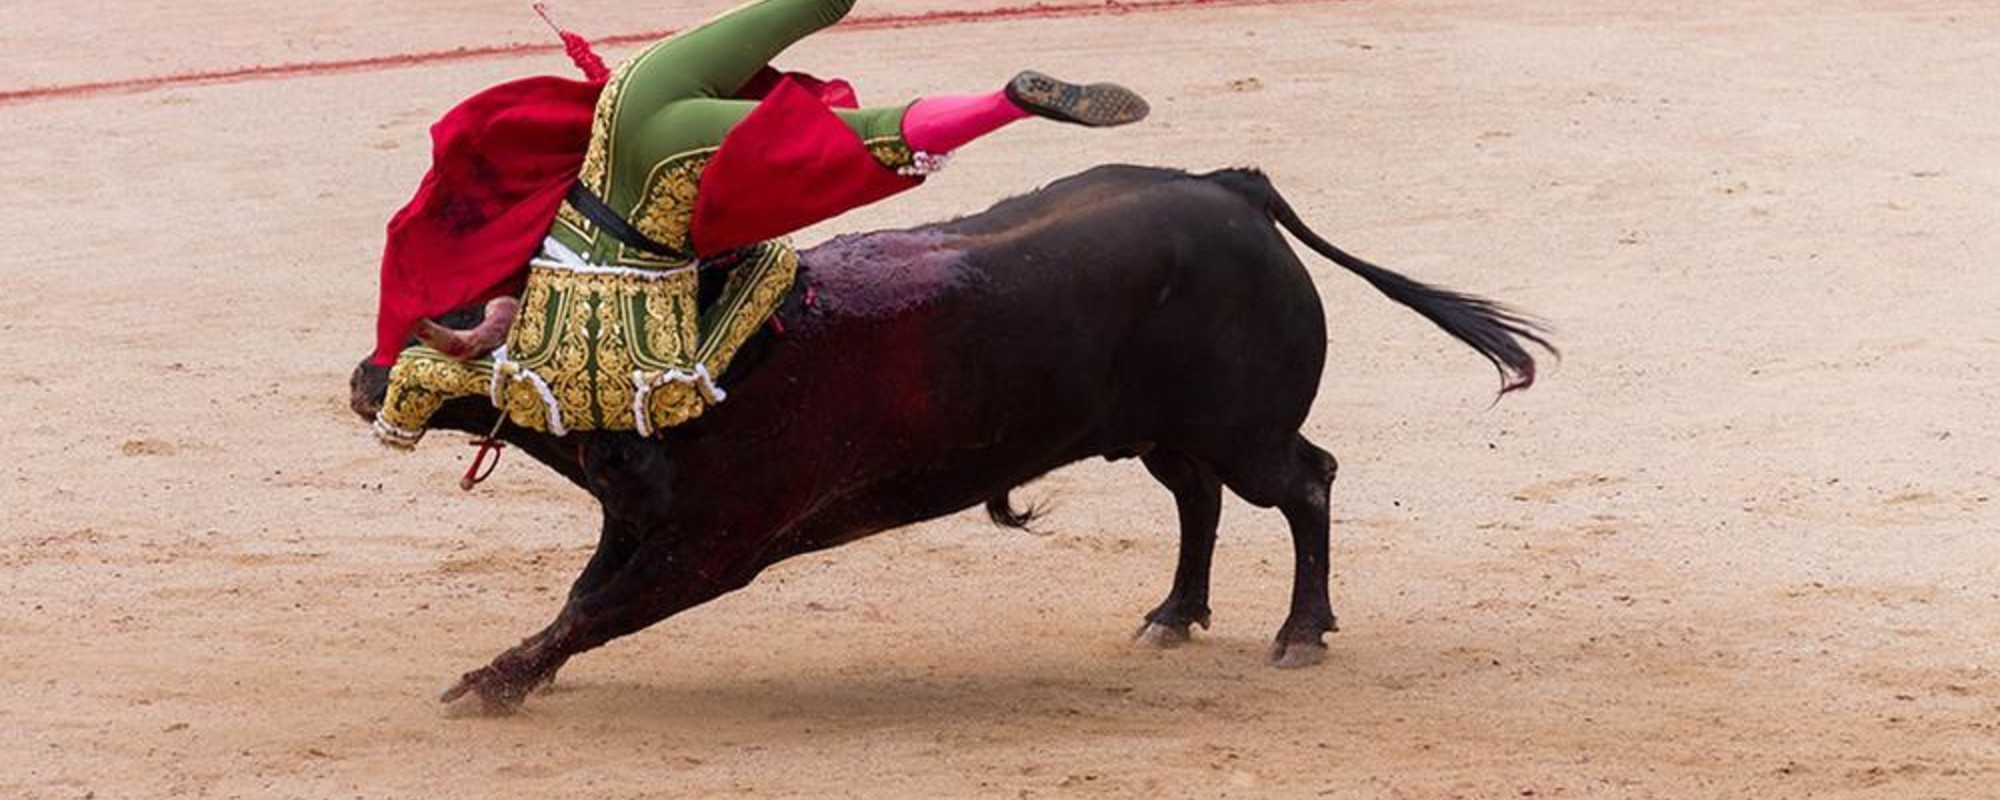 Tragic Photos of the Carnage at Spain's Bullfighting Festival